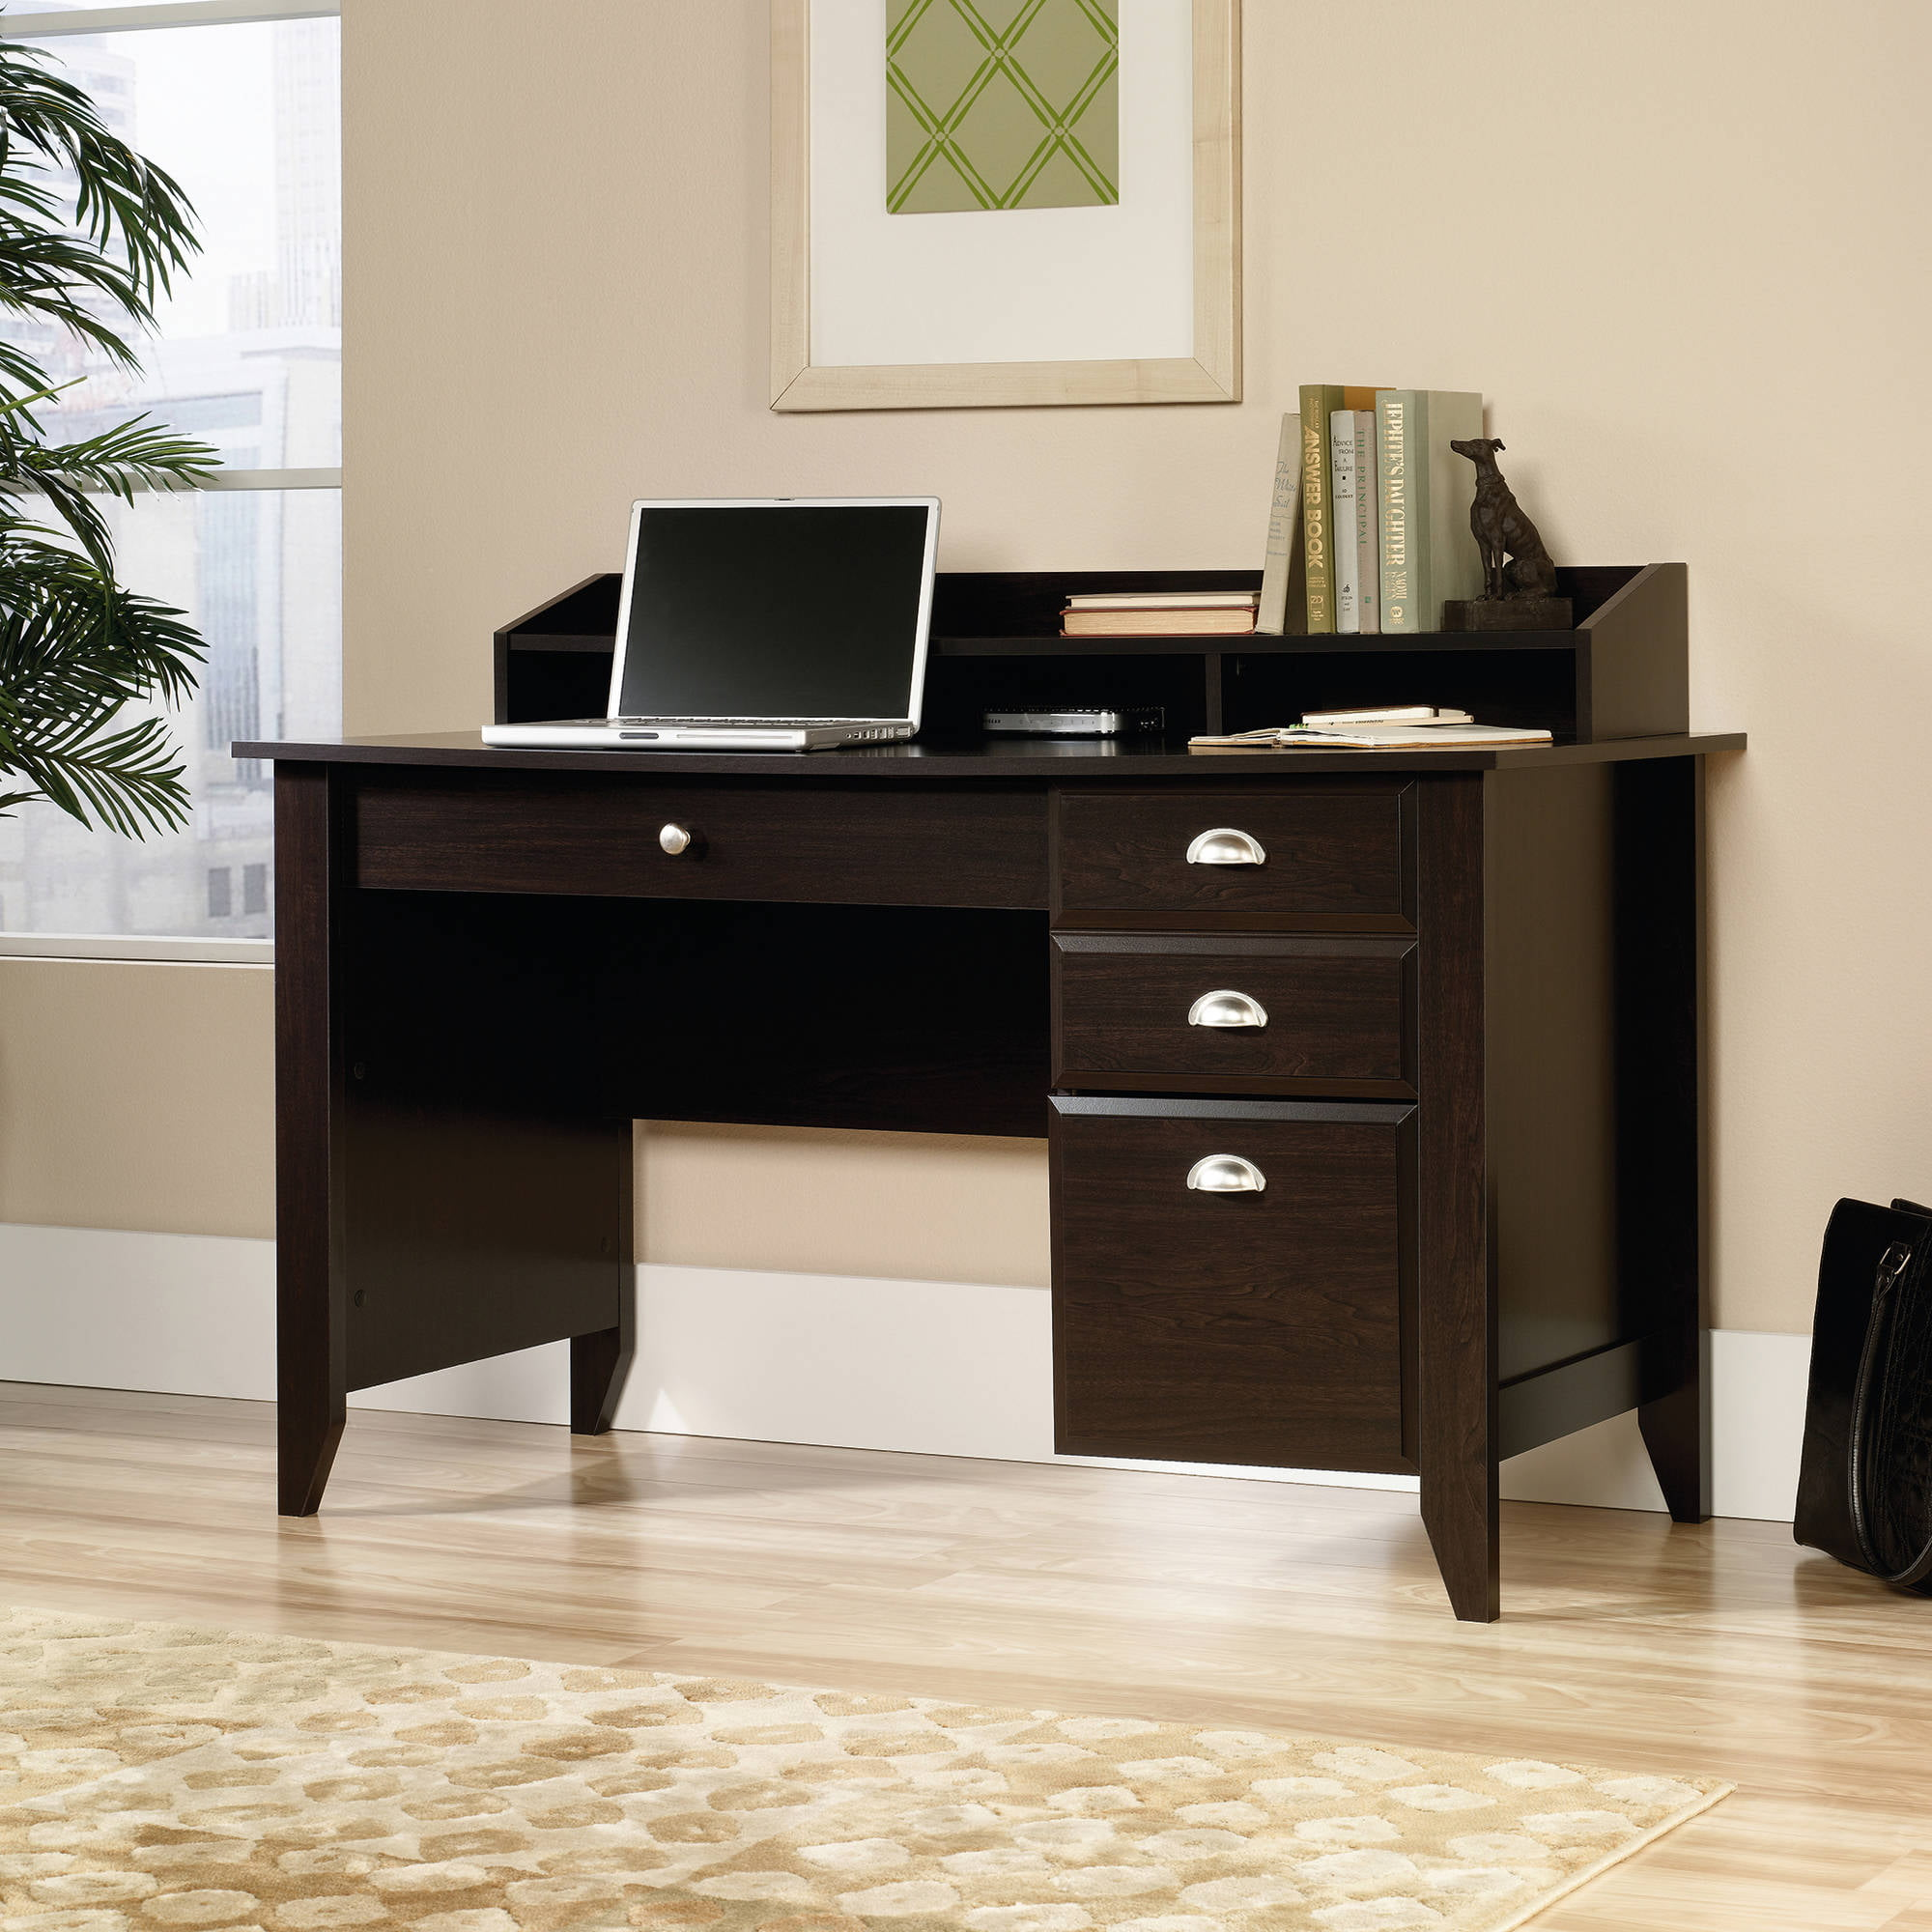 Sauder shoal creek executive desk in jamocha wood - Sauder Shoal Creek Executive Desk In Jamocha Wood 6